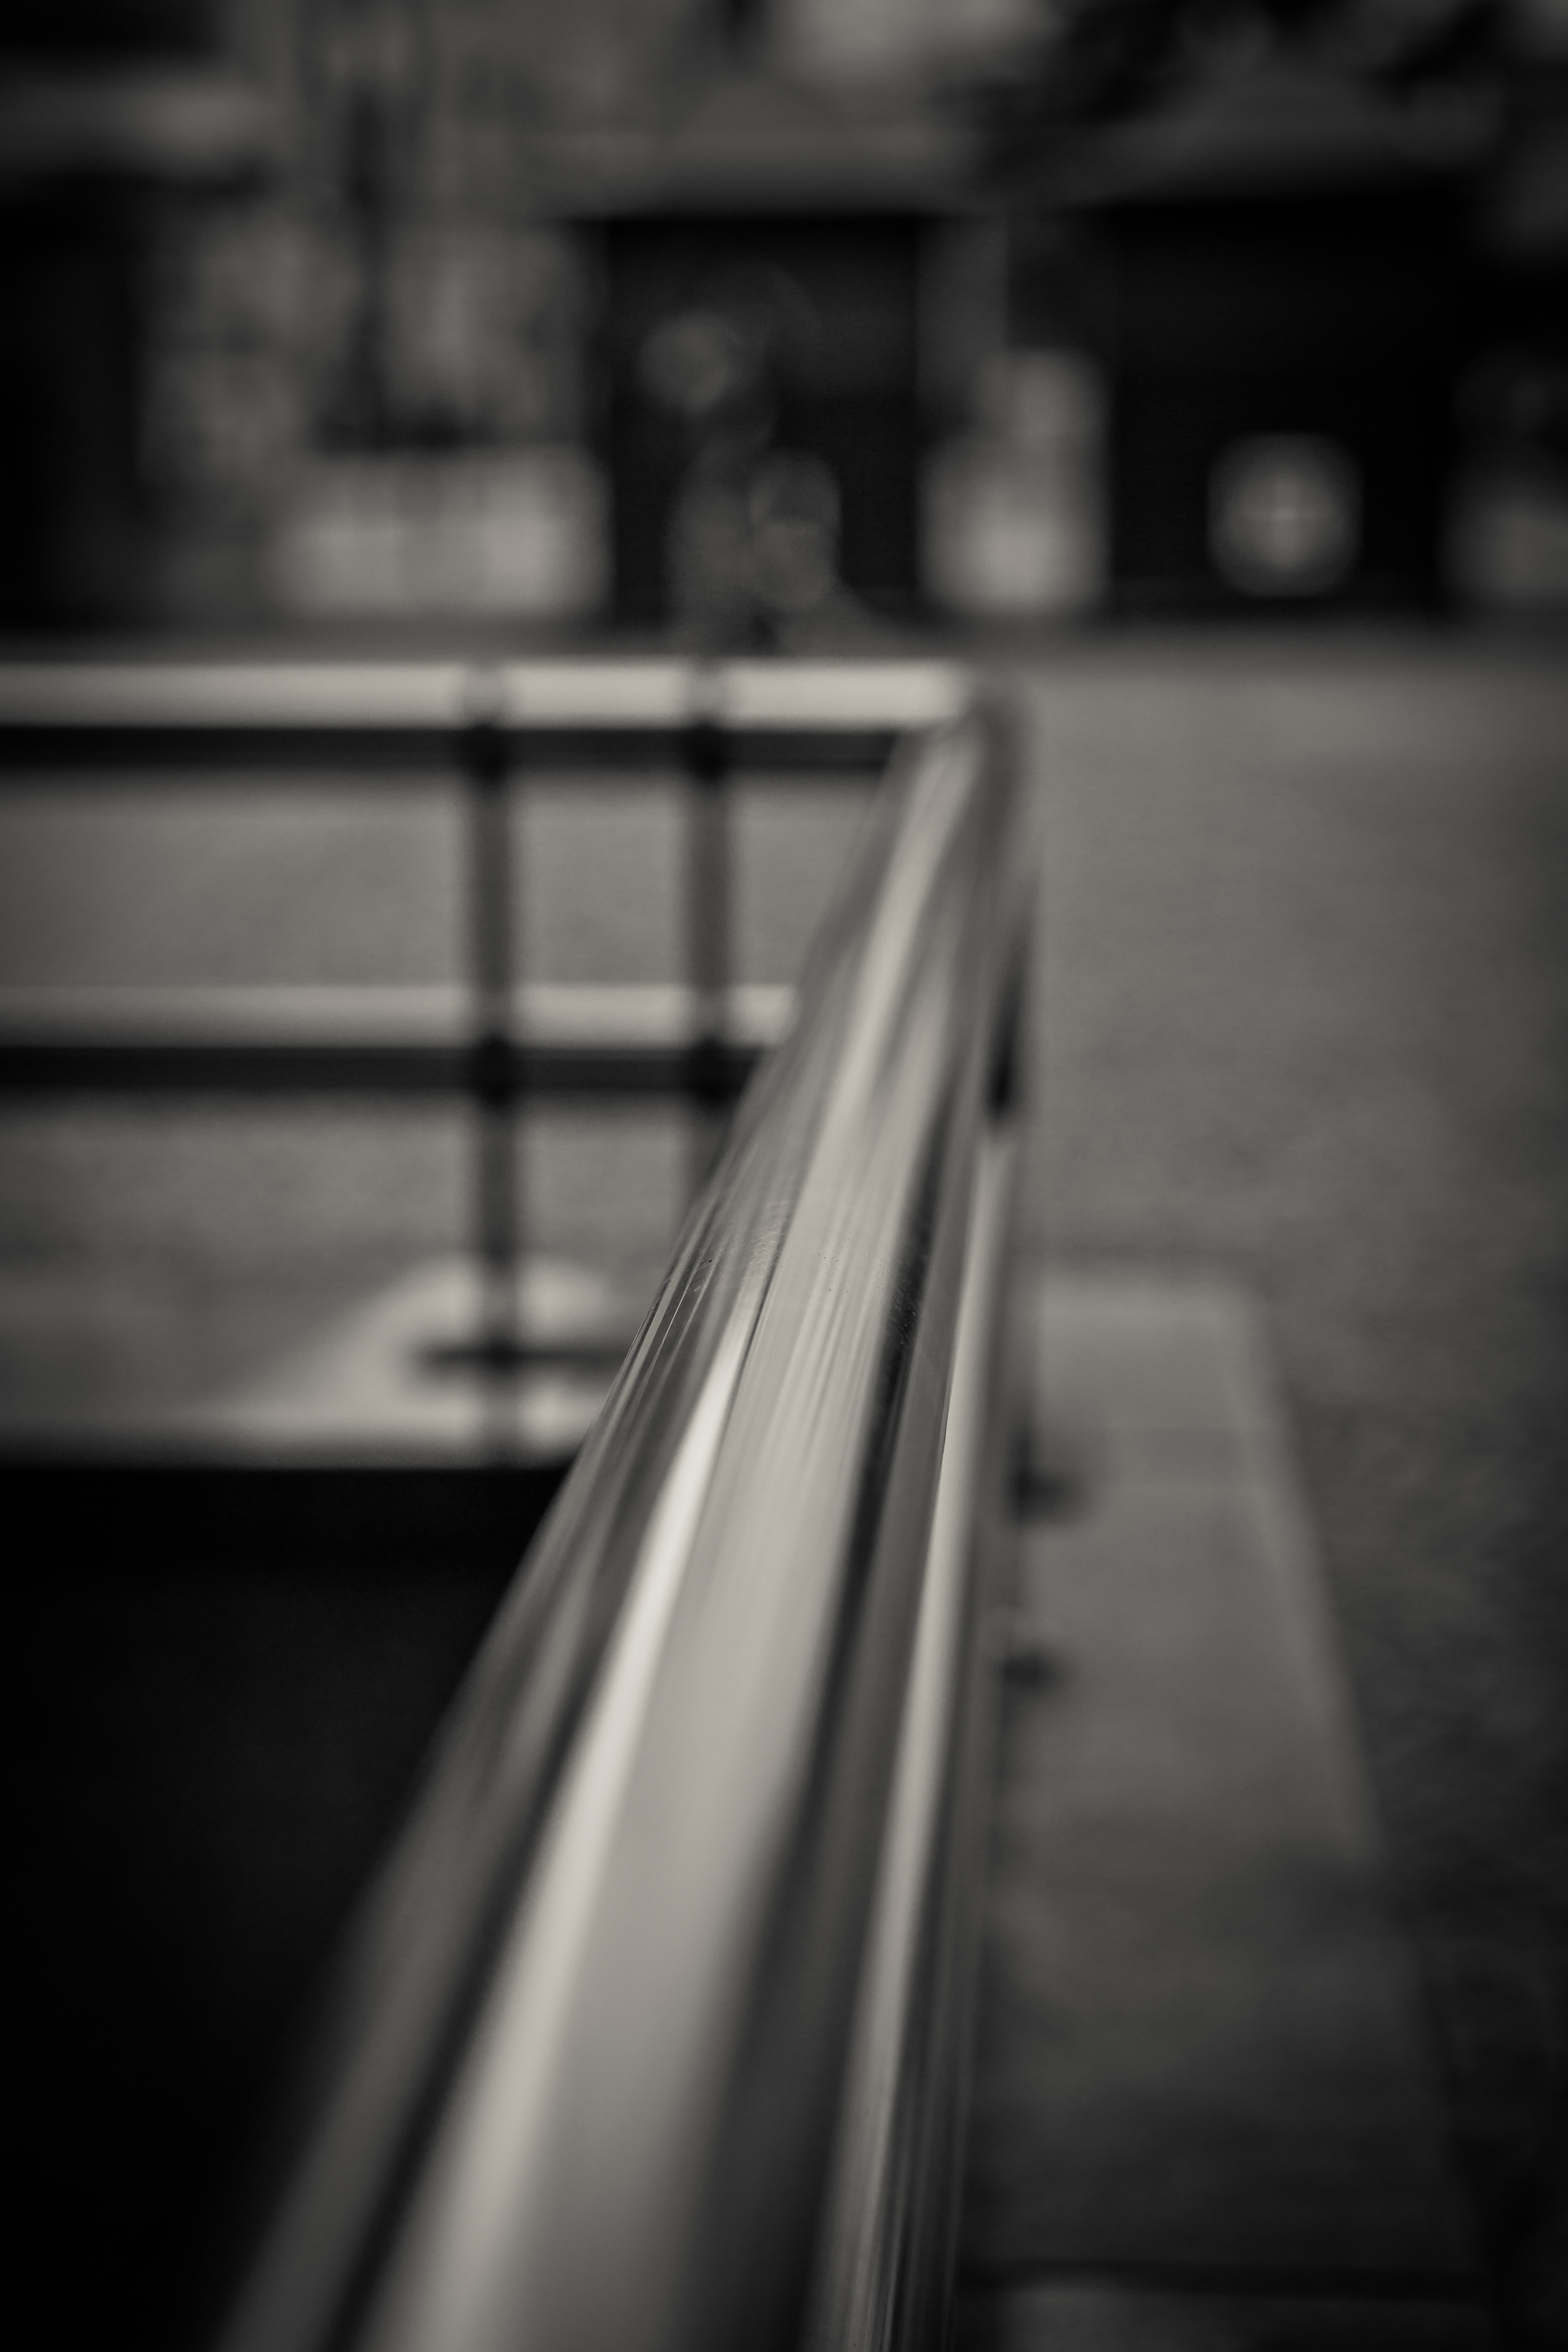 Silent life of the steel, Structure, Urban, Street, Steel, HQ Photo